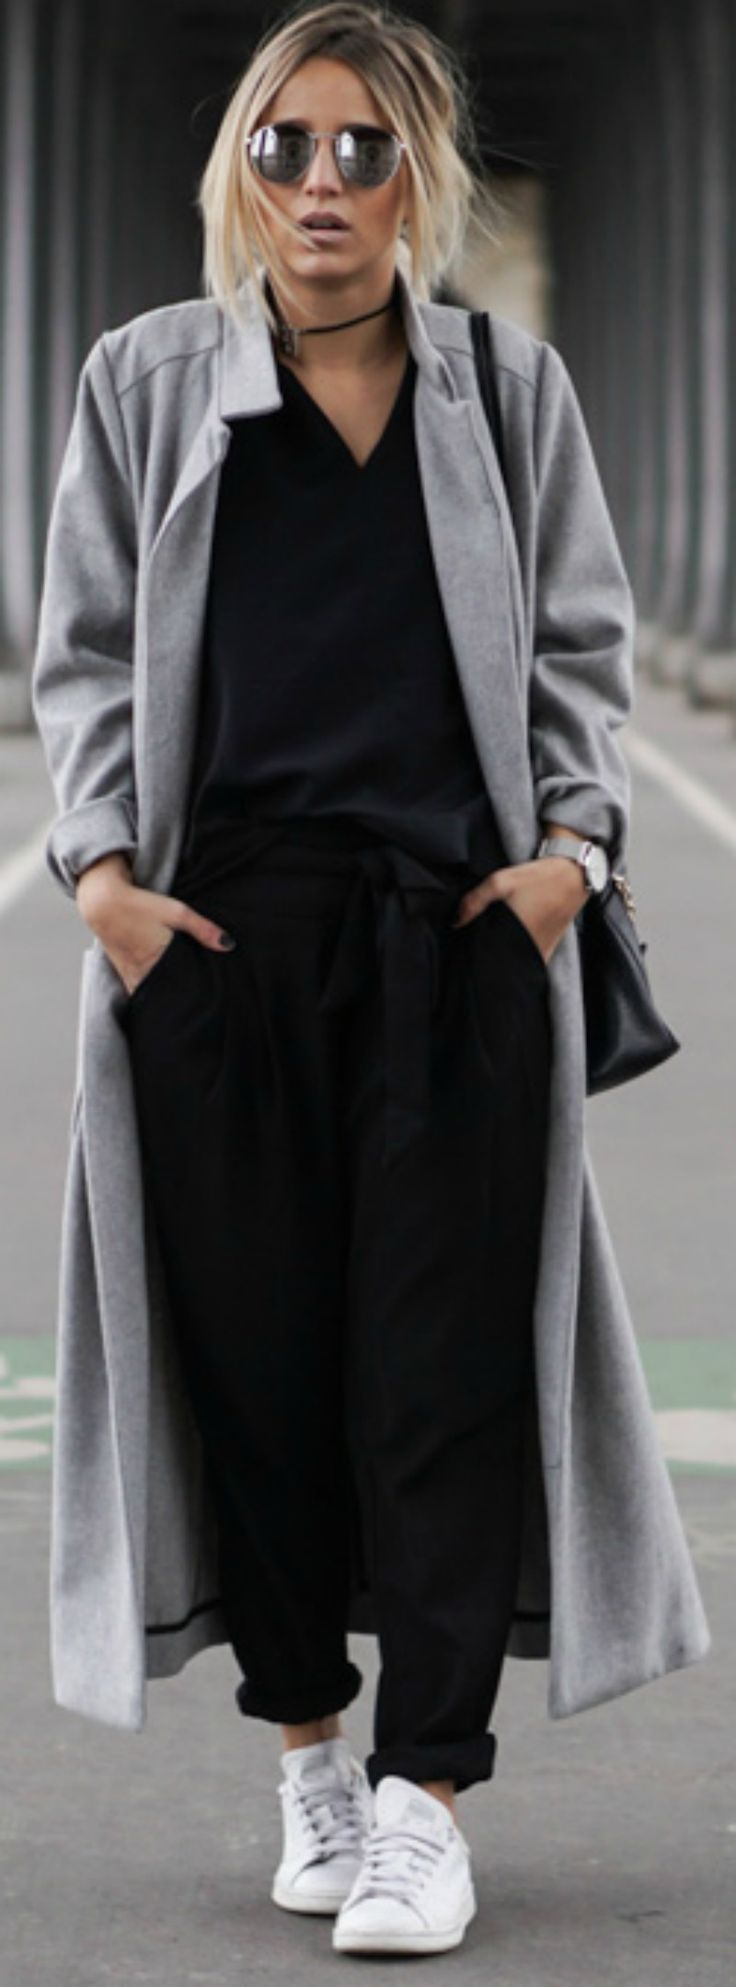 Camille Callen débuts an awesome casual style here, combining stylish baggy trousers with a simple V neck while tying the look together with a gorgeous marl grey maxi coat from Sheinside. An authentic pair of Adidas Stan Smiths will also make the perfect finish to any maxi coat outfit. Top: Zara, Trousers: Mango, Coat: Sheinside, Sneakers: Adidas. #womenscardigan #womensouterwear #womensjacket #scarves #scarf #fashion